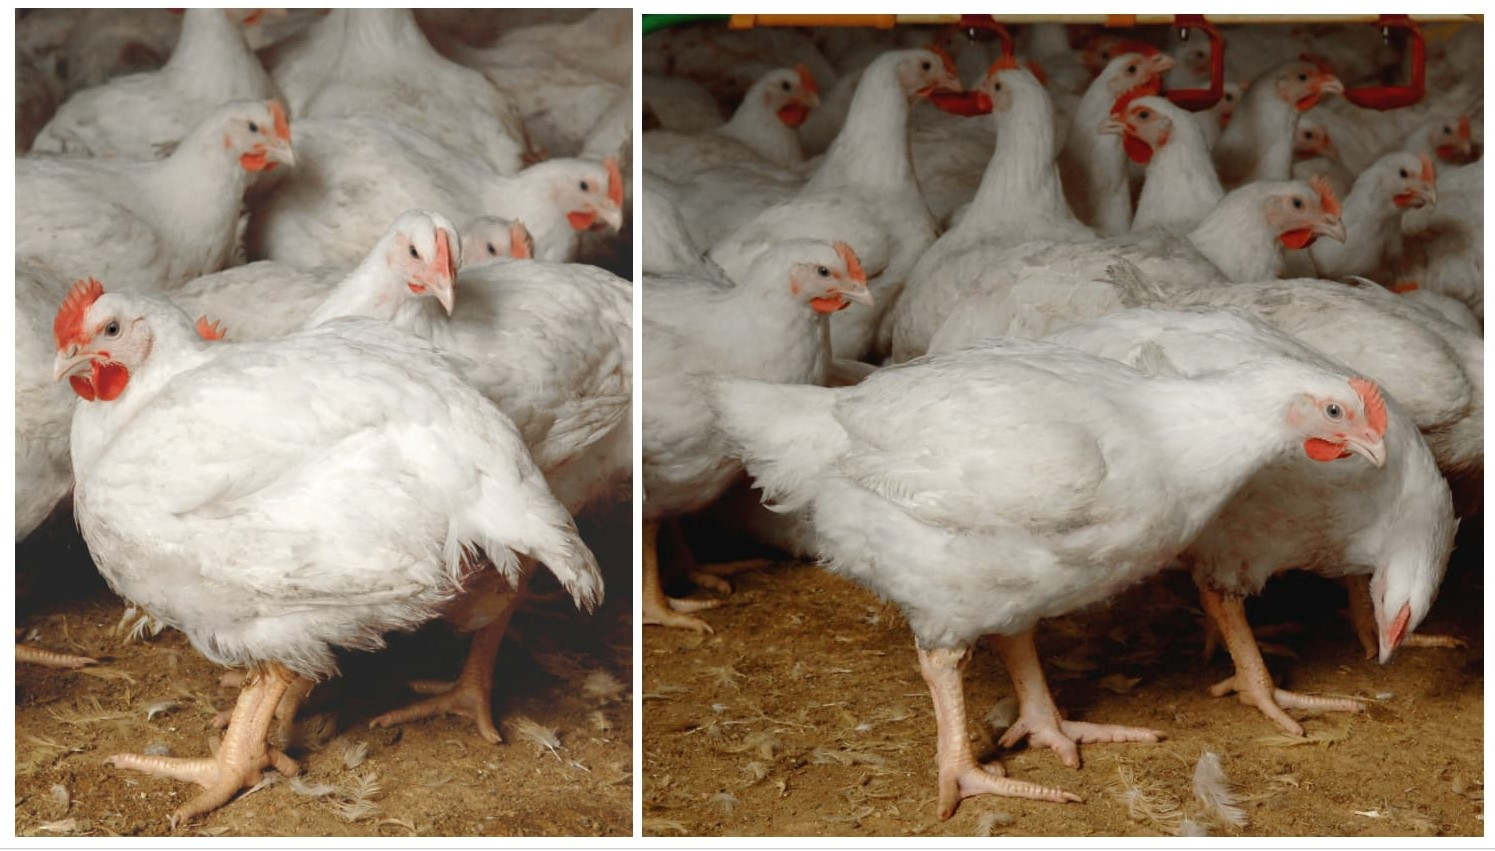 chicken meat production acmf - HD1495×851